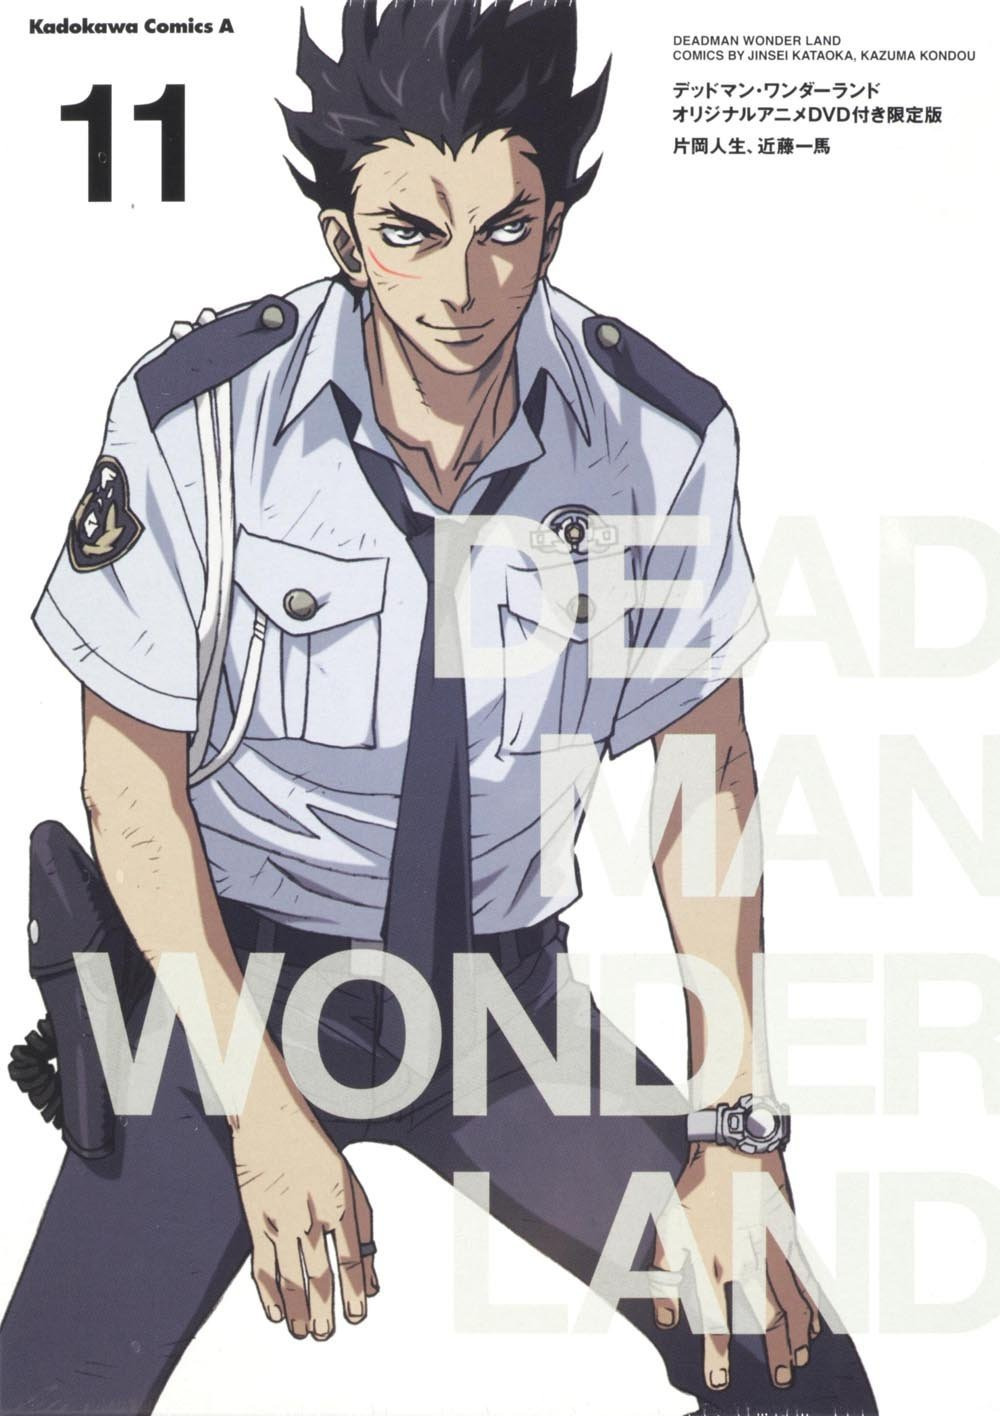 Red Knife Wielder | Deadman Wonderland Wiki | FANDOM ...